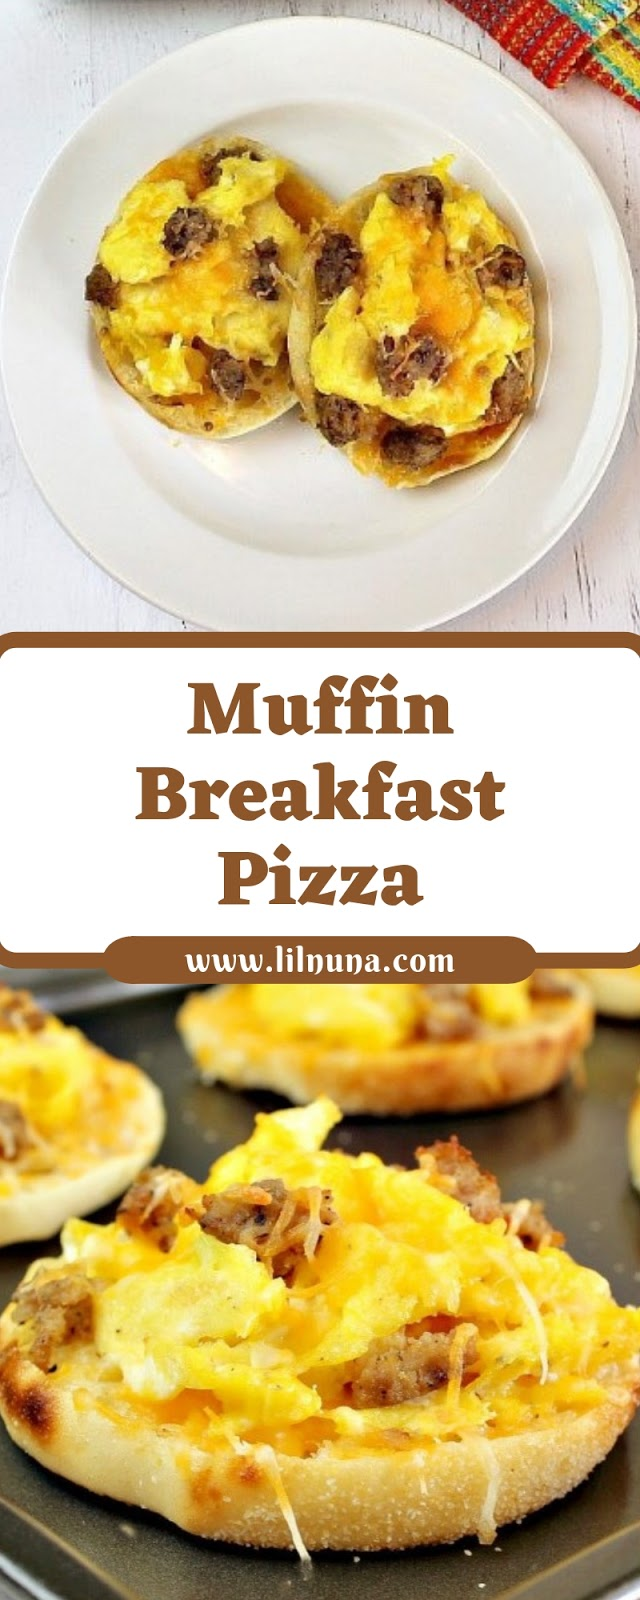 Muffin Breakfast Pizza